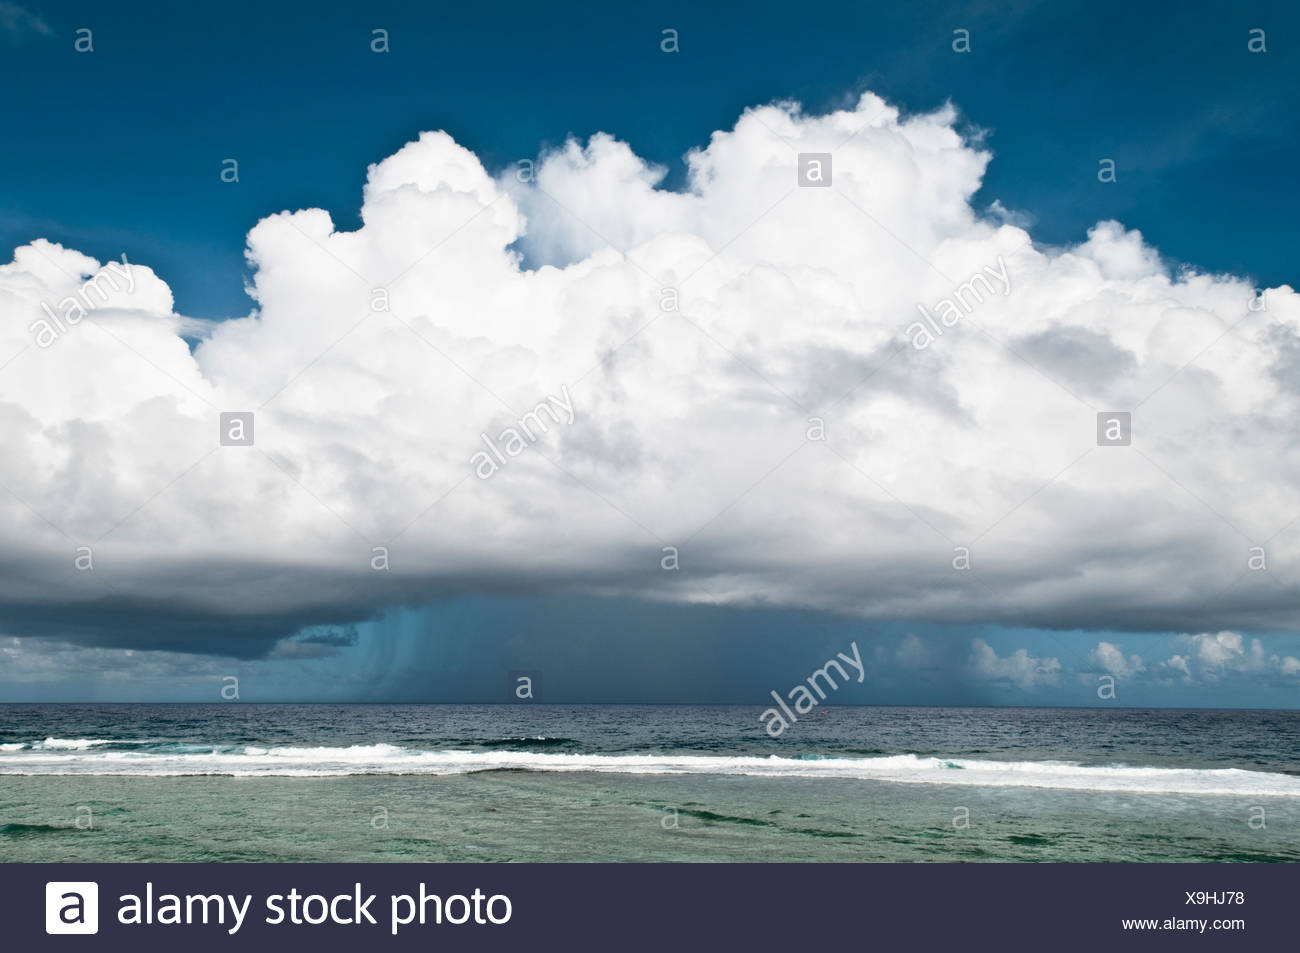 Clouds and rain, Cook Islands. - Stock Image